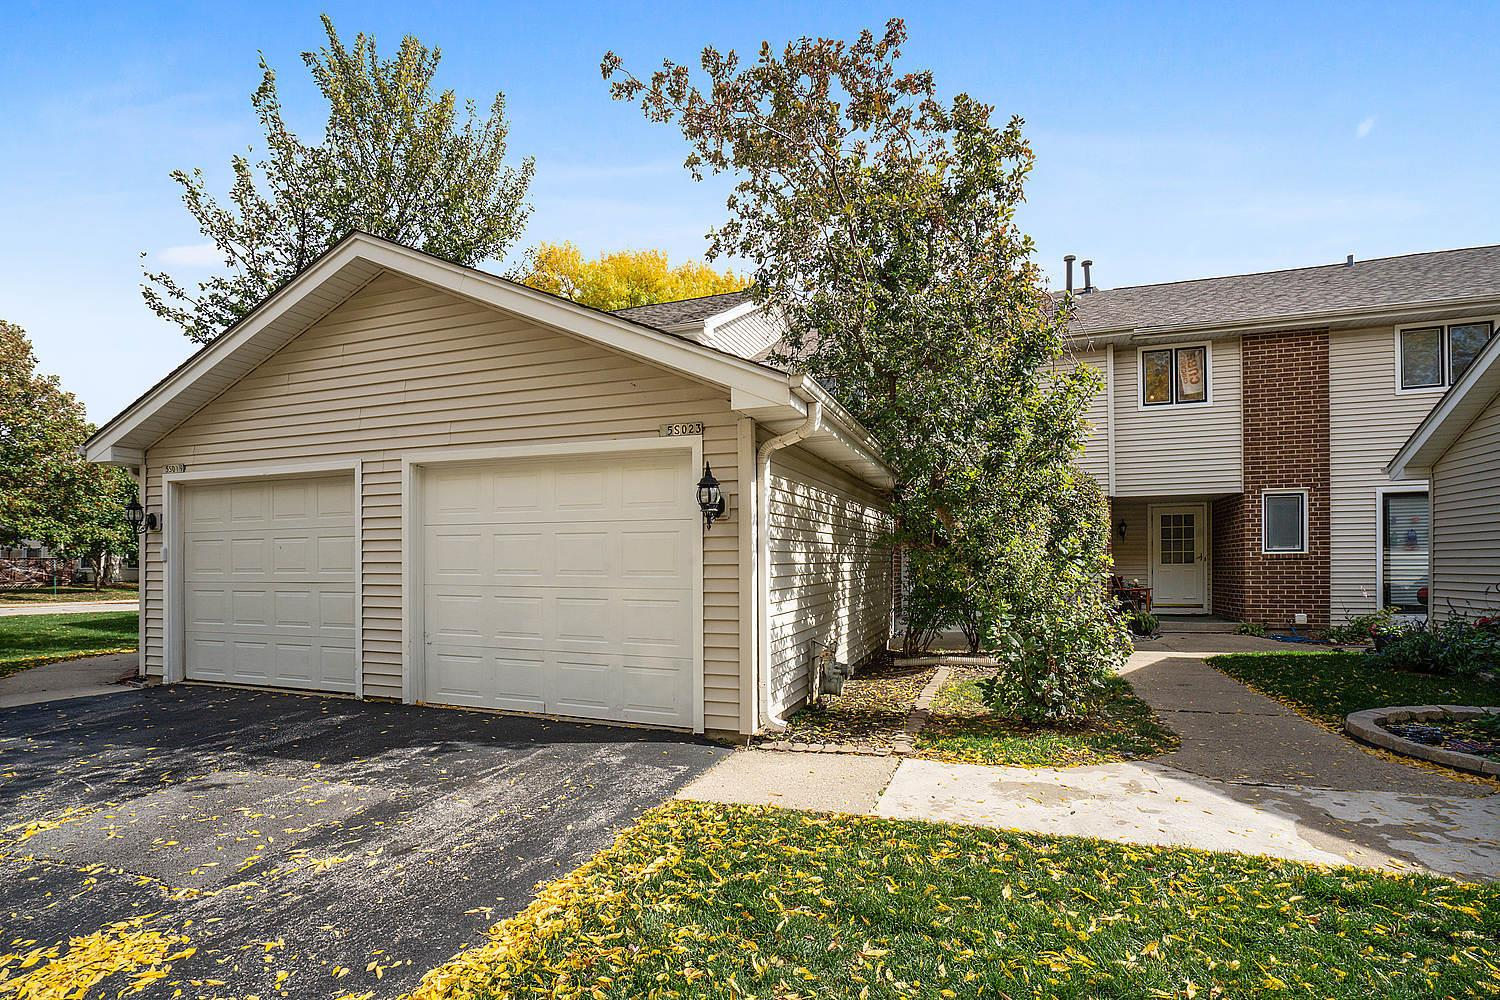 5S023 PEBBLE BEACH Court, Naperville, IL 60563 - #: 10901717